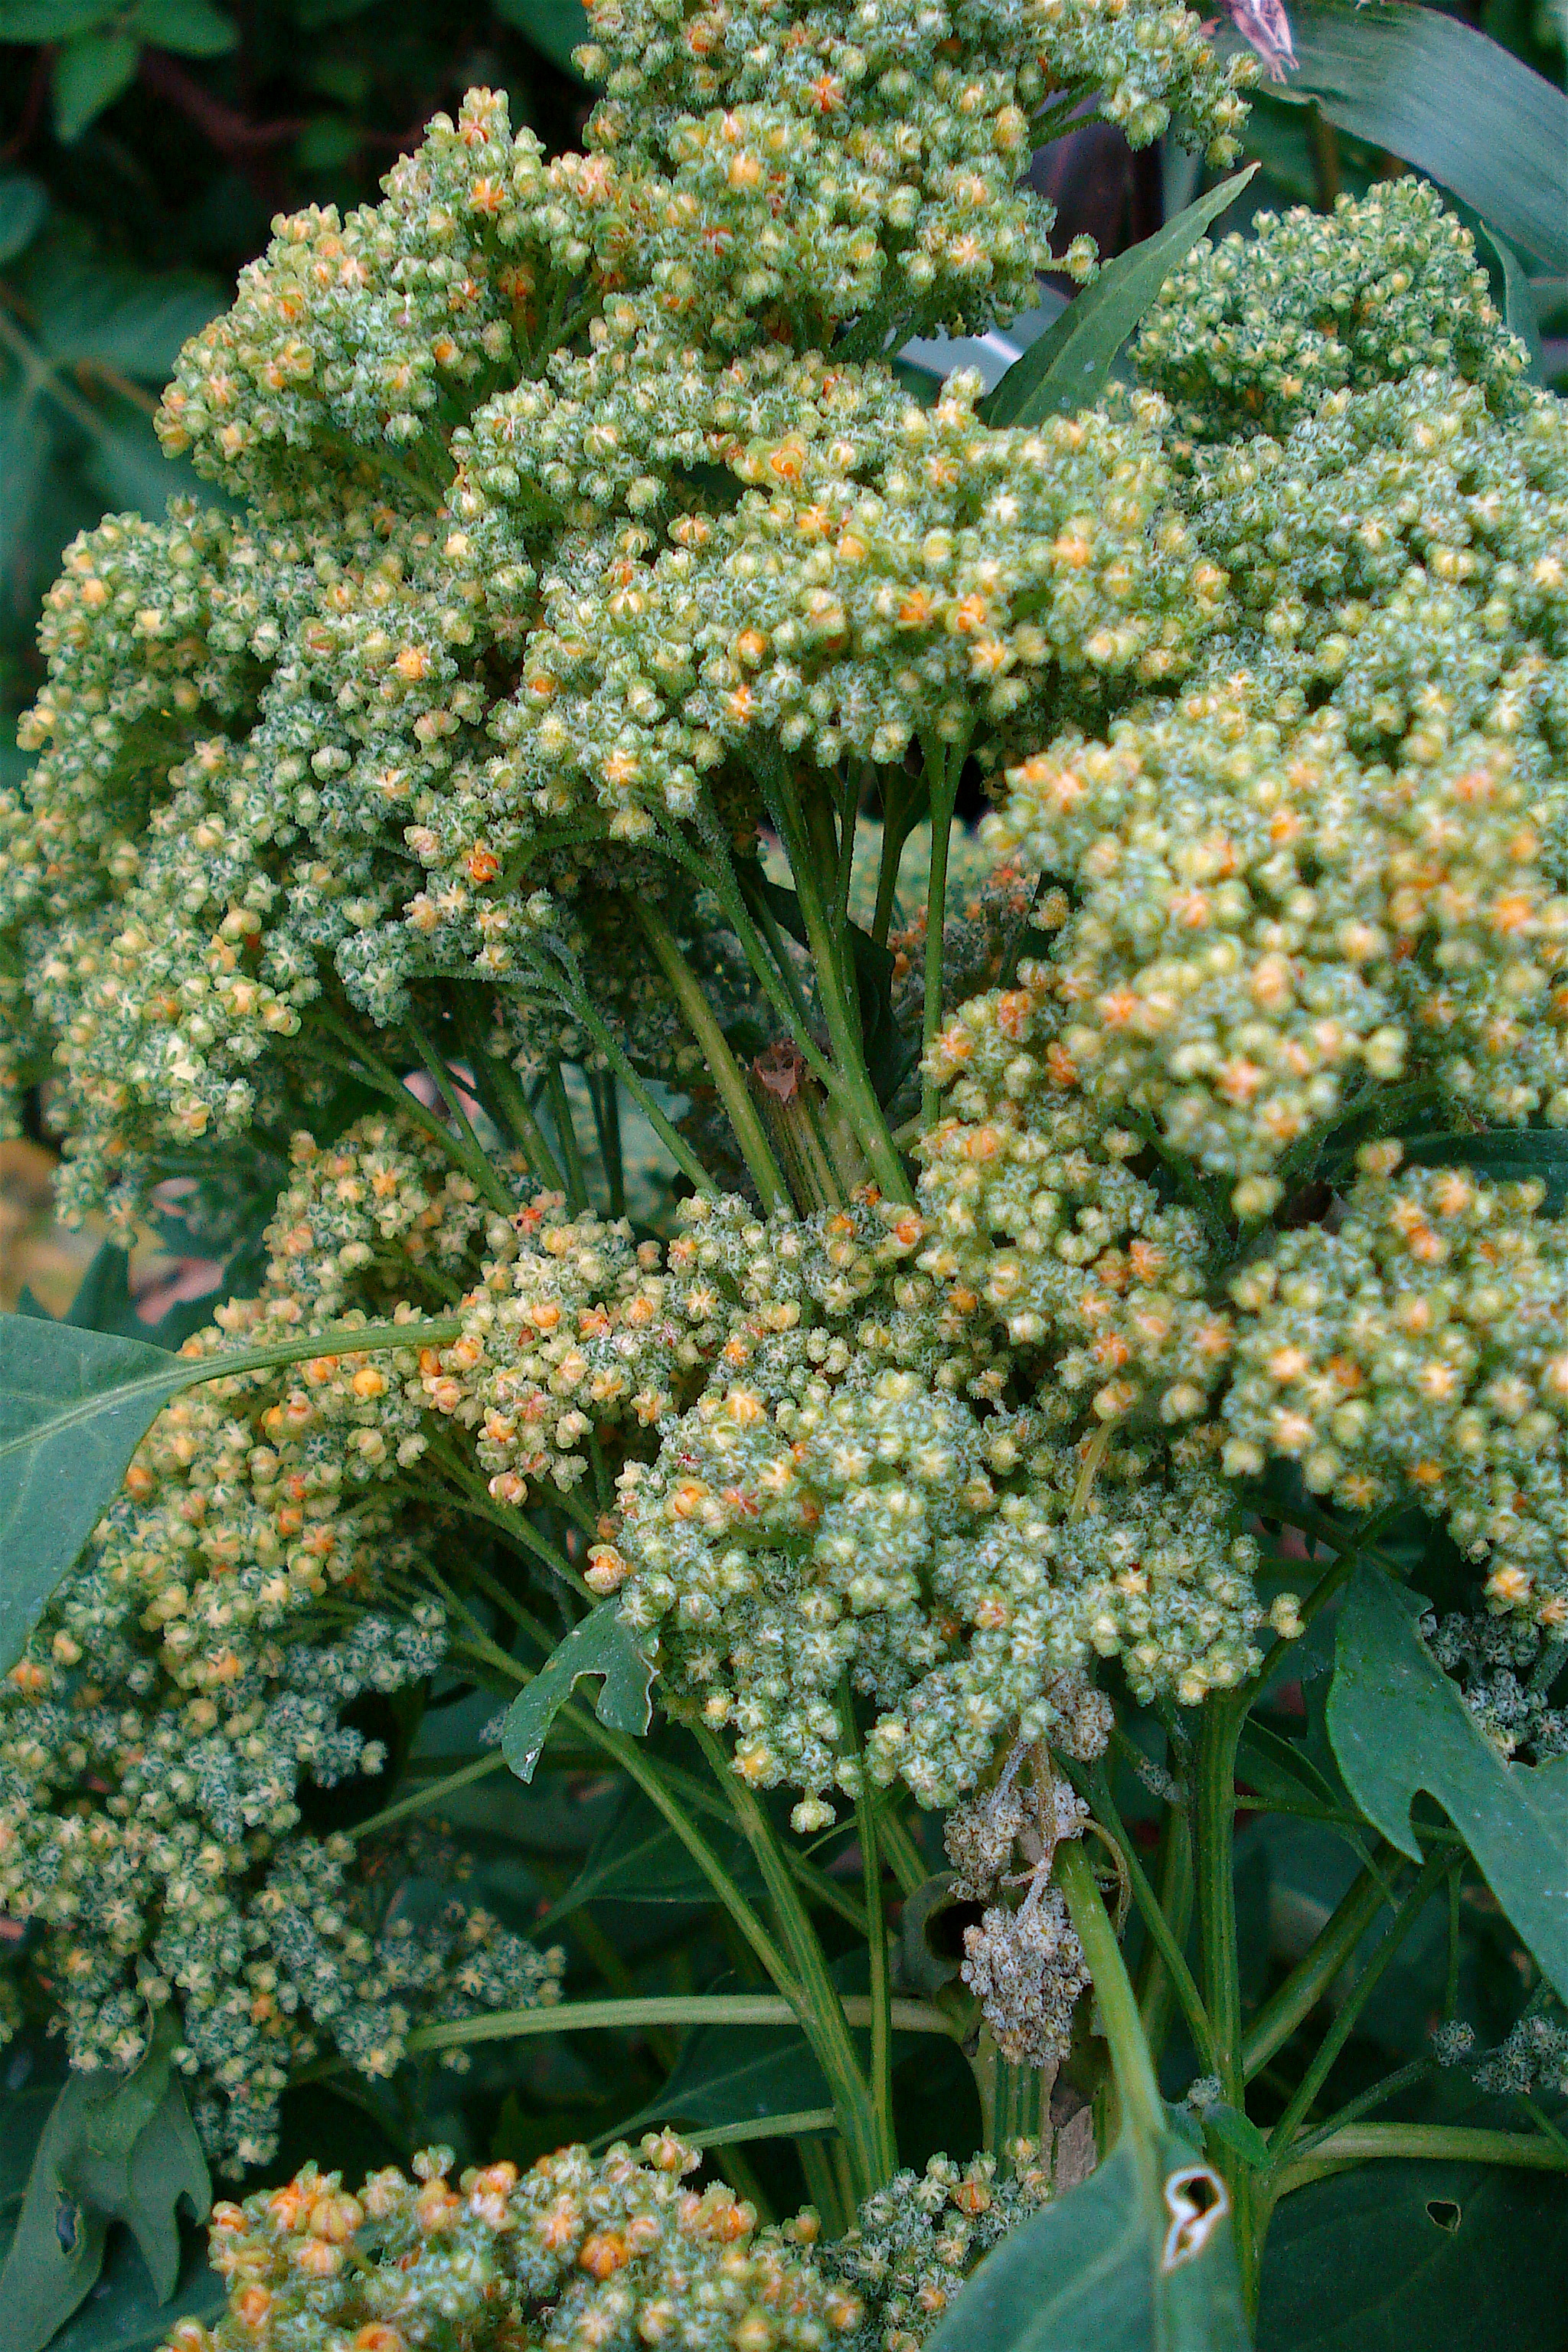 WholeDude - WholeDesigner - Phytochemistry: Chenopodium quinoa synthesizes several amino chemical compounds called Polyamines such as Putrescine, Spermine, and Spermidine which are also present in the human, male reproductive secretion called Seminal Plasma or Semen.